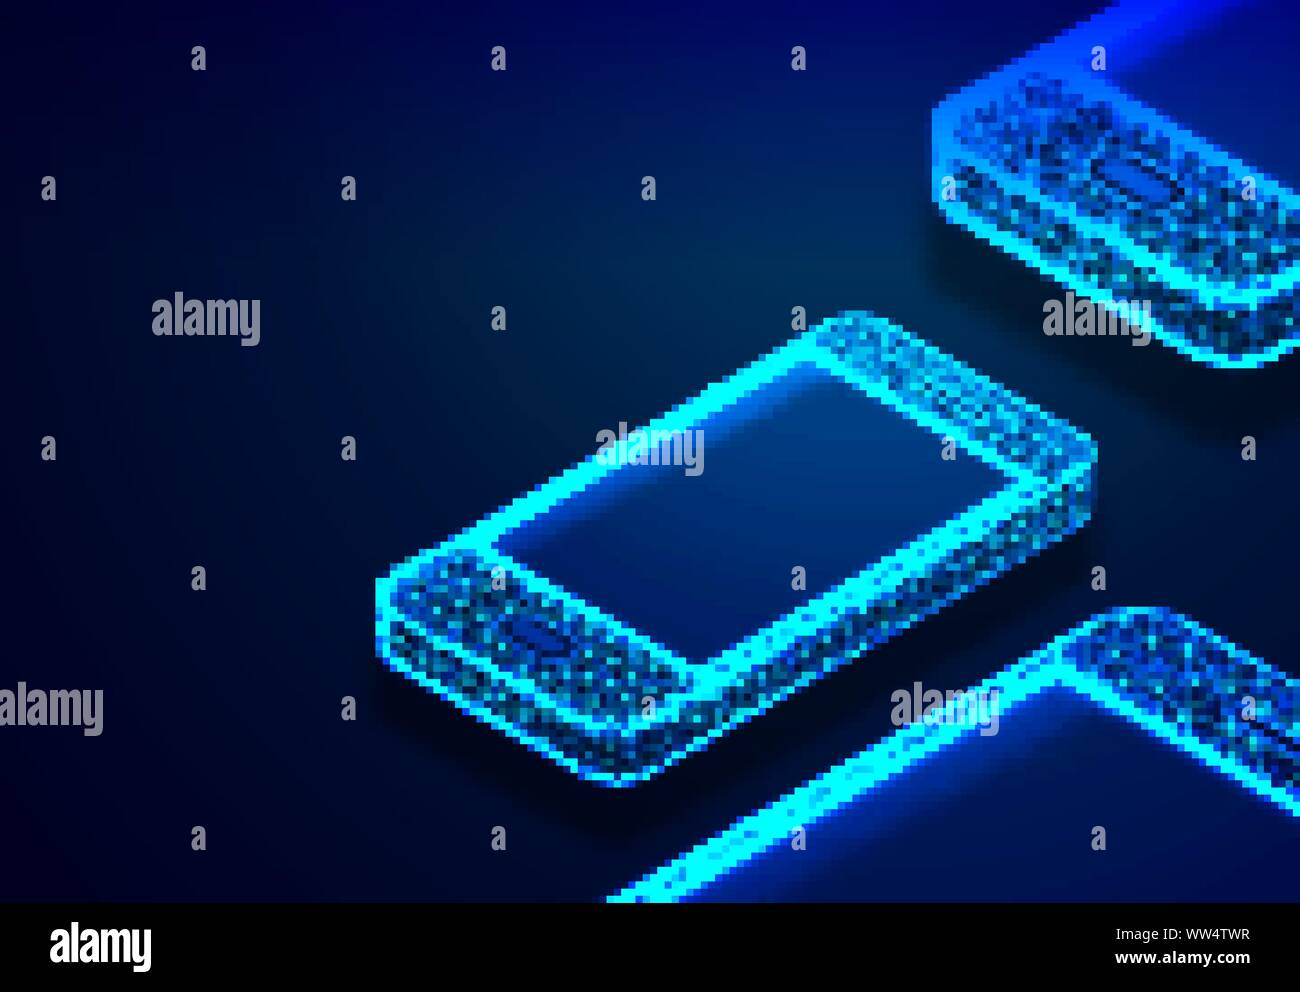 Meet All Your Charging Equipment Data Lines Low Poly Rainbow Abstract Background Vector